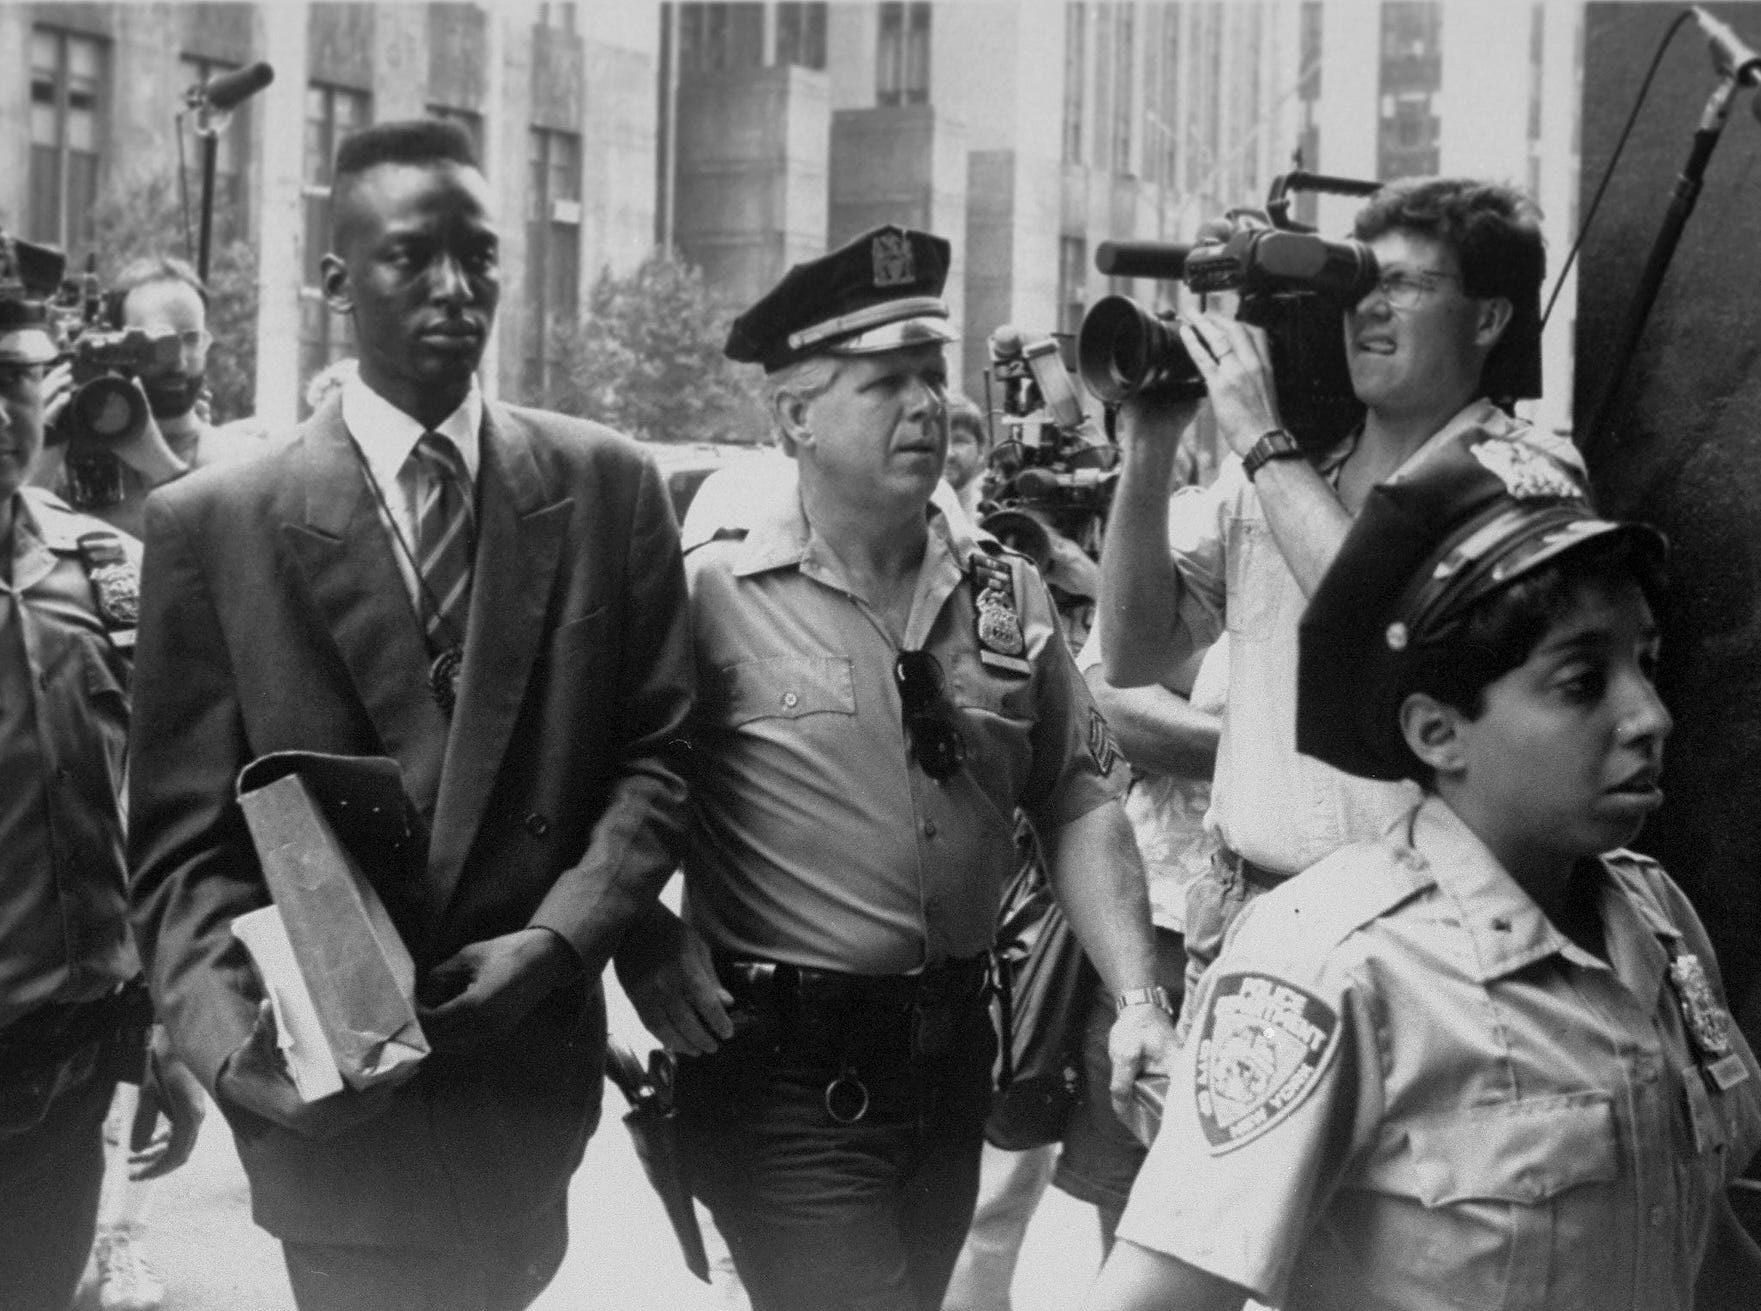 Five African-American teenagers were convicted and later exonerated of the 1989 rape of a jogger in Central Park in New York. In 2012, well renowned documentarian Ken Burns took on the case in a film about those charged with the crime, including Yusef Salaam (pictured), which ran on PBS.